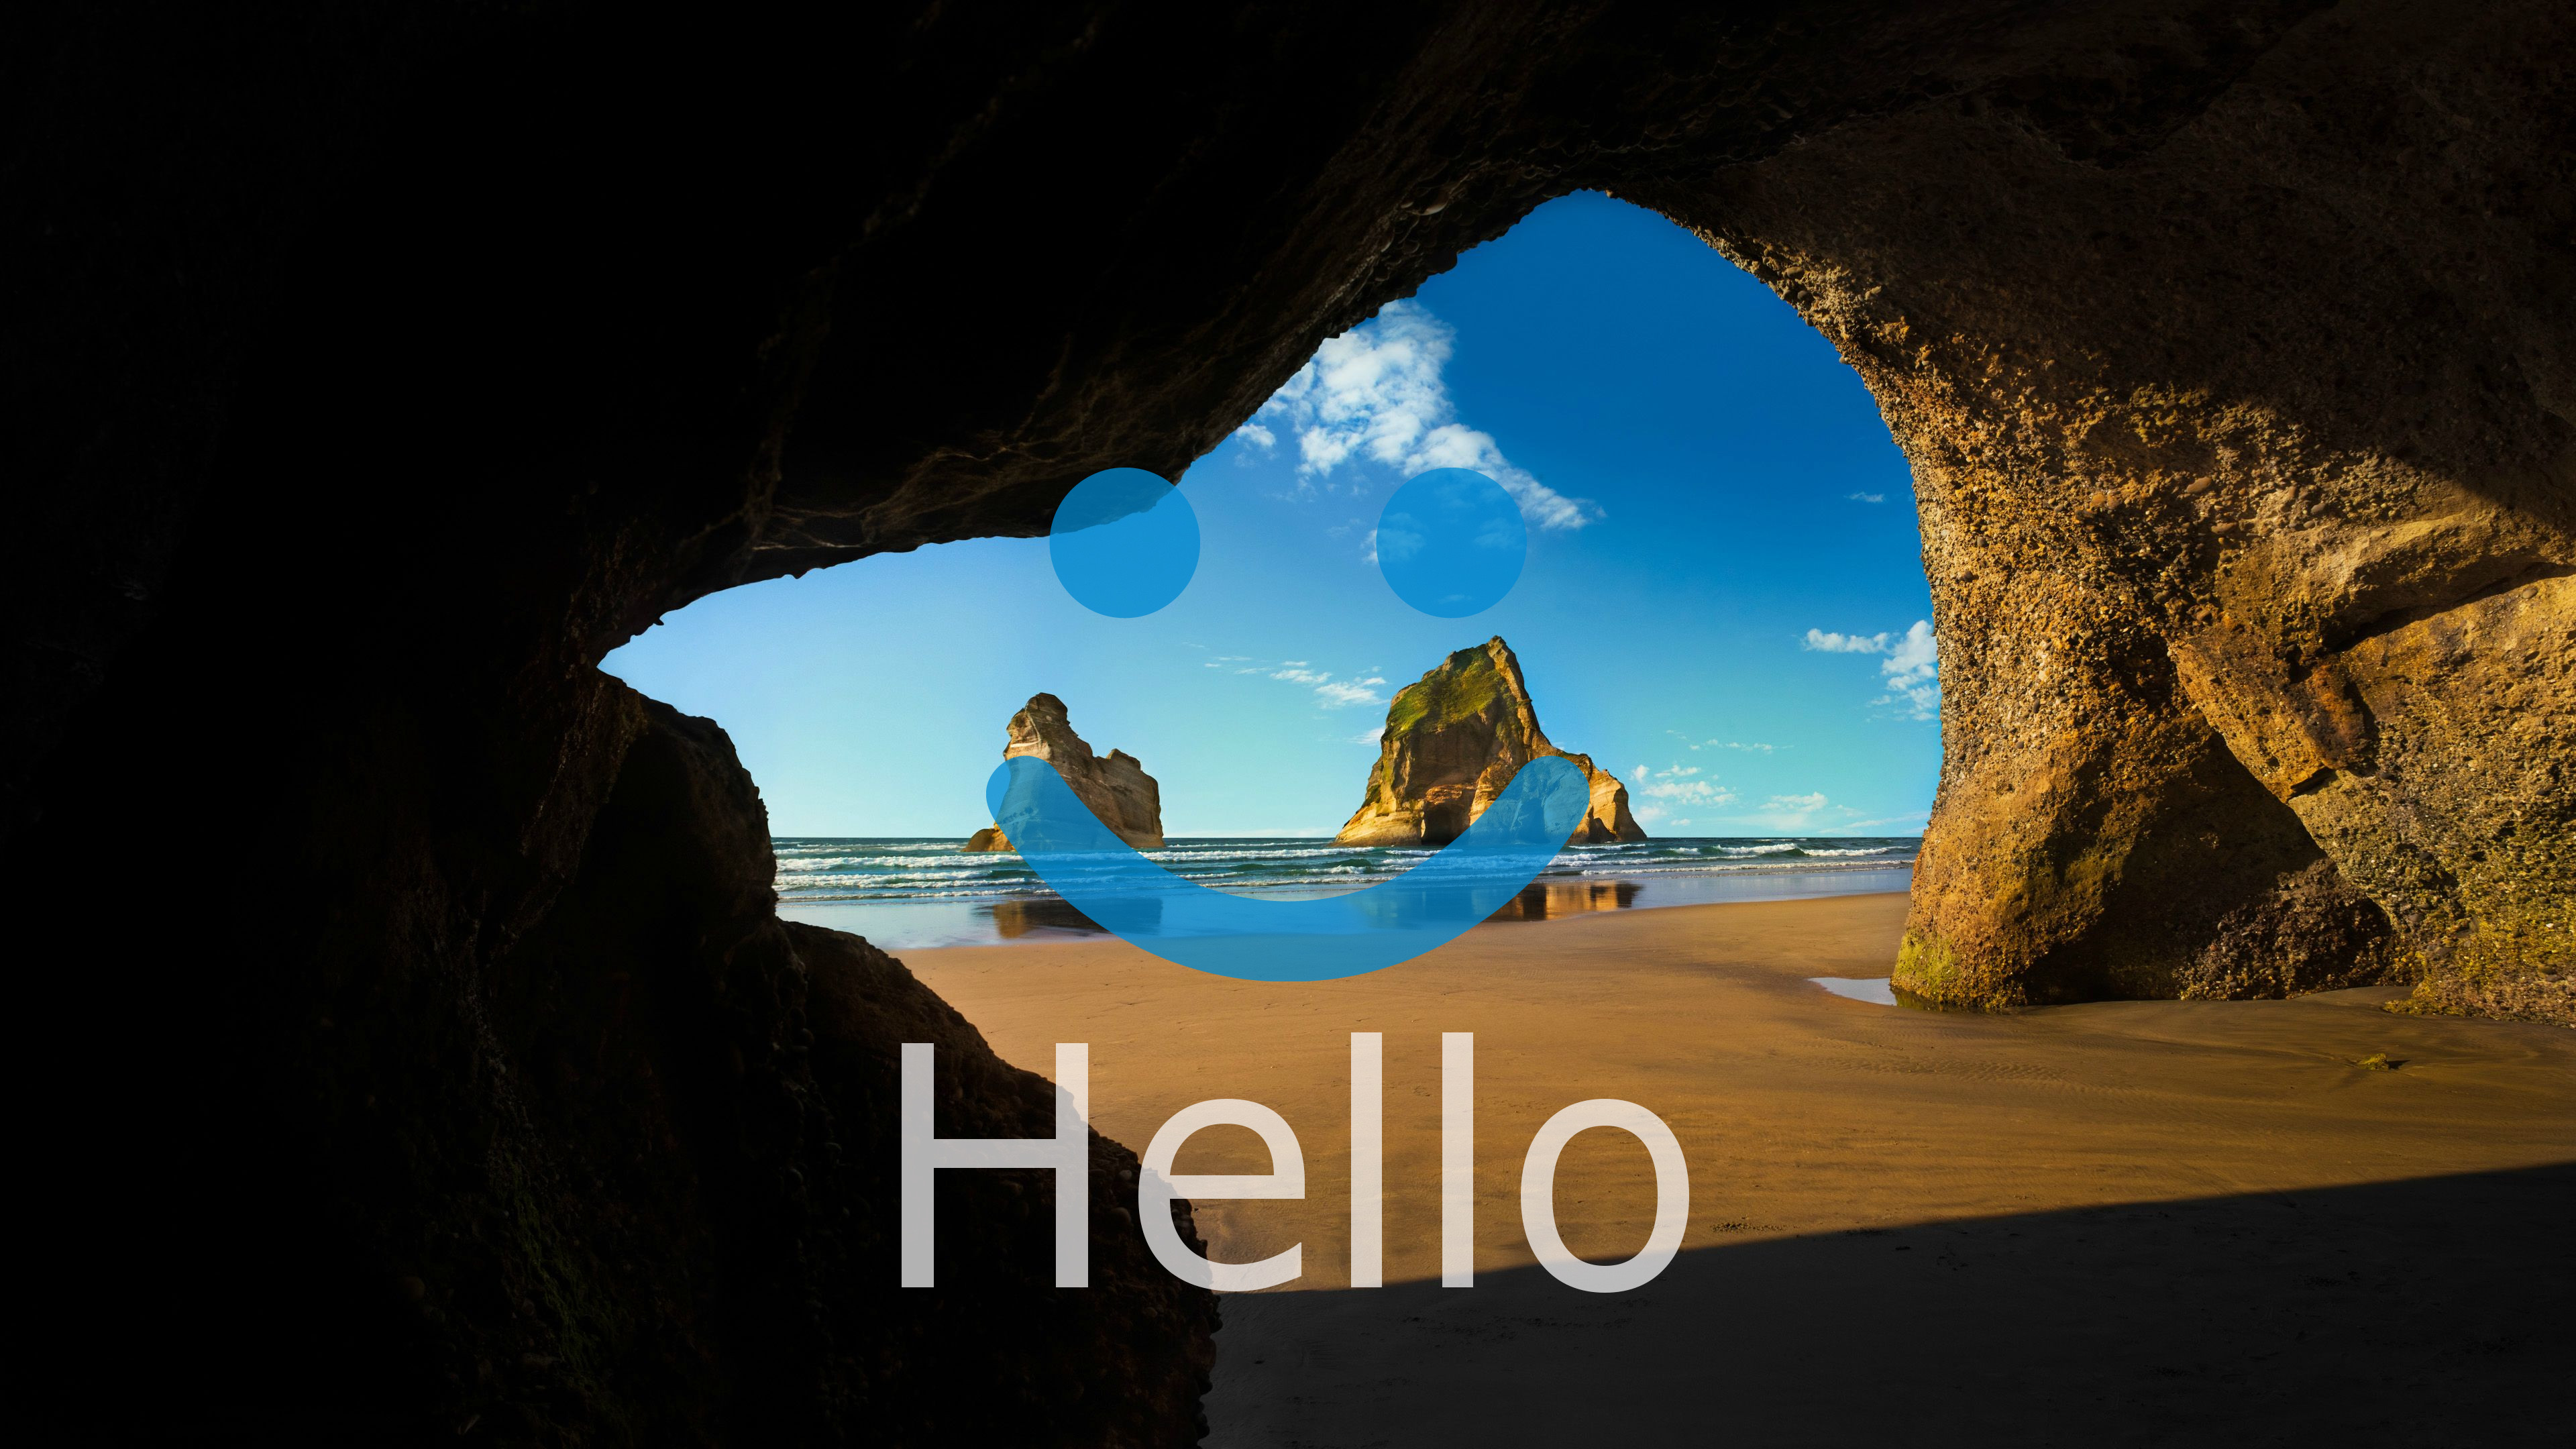 Feeling Unrecognized (Windows Hello)